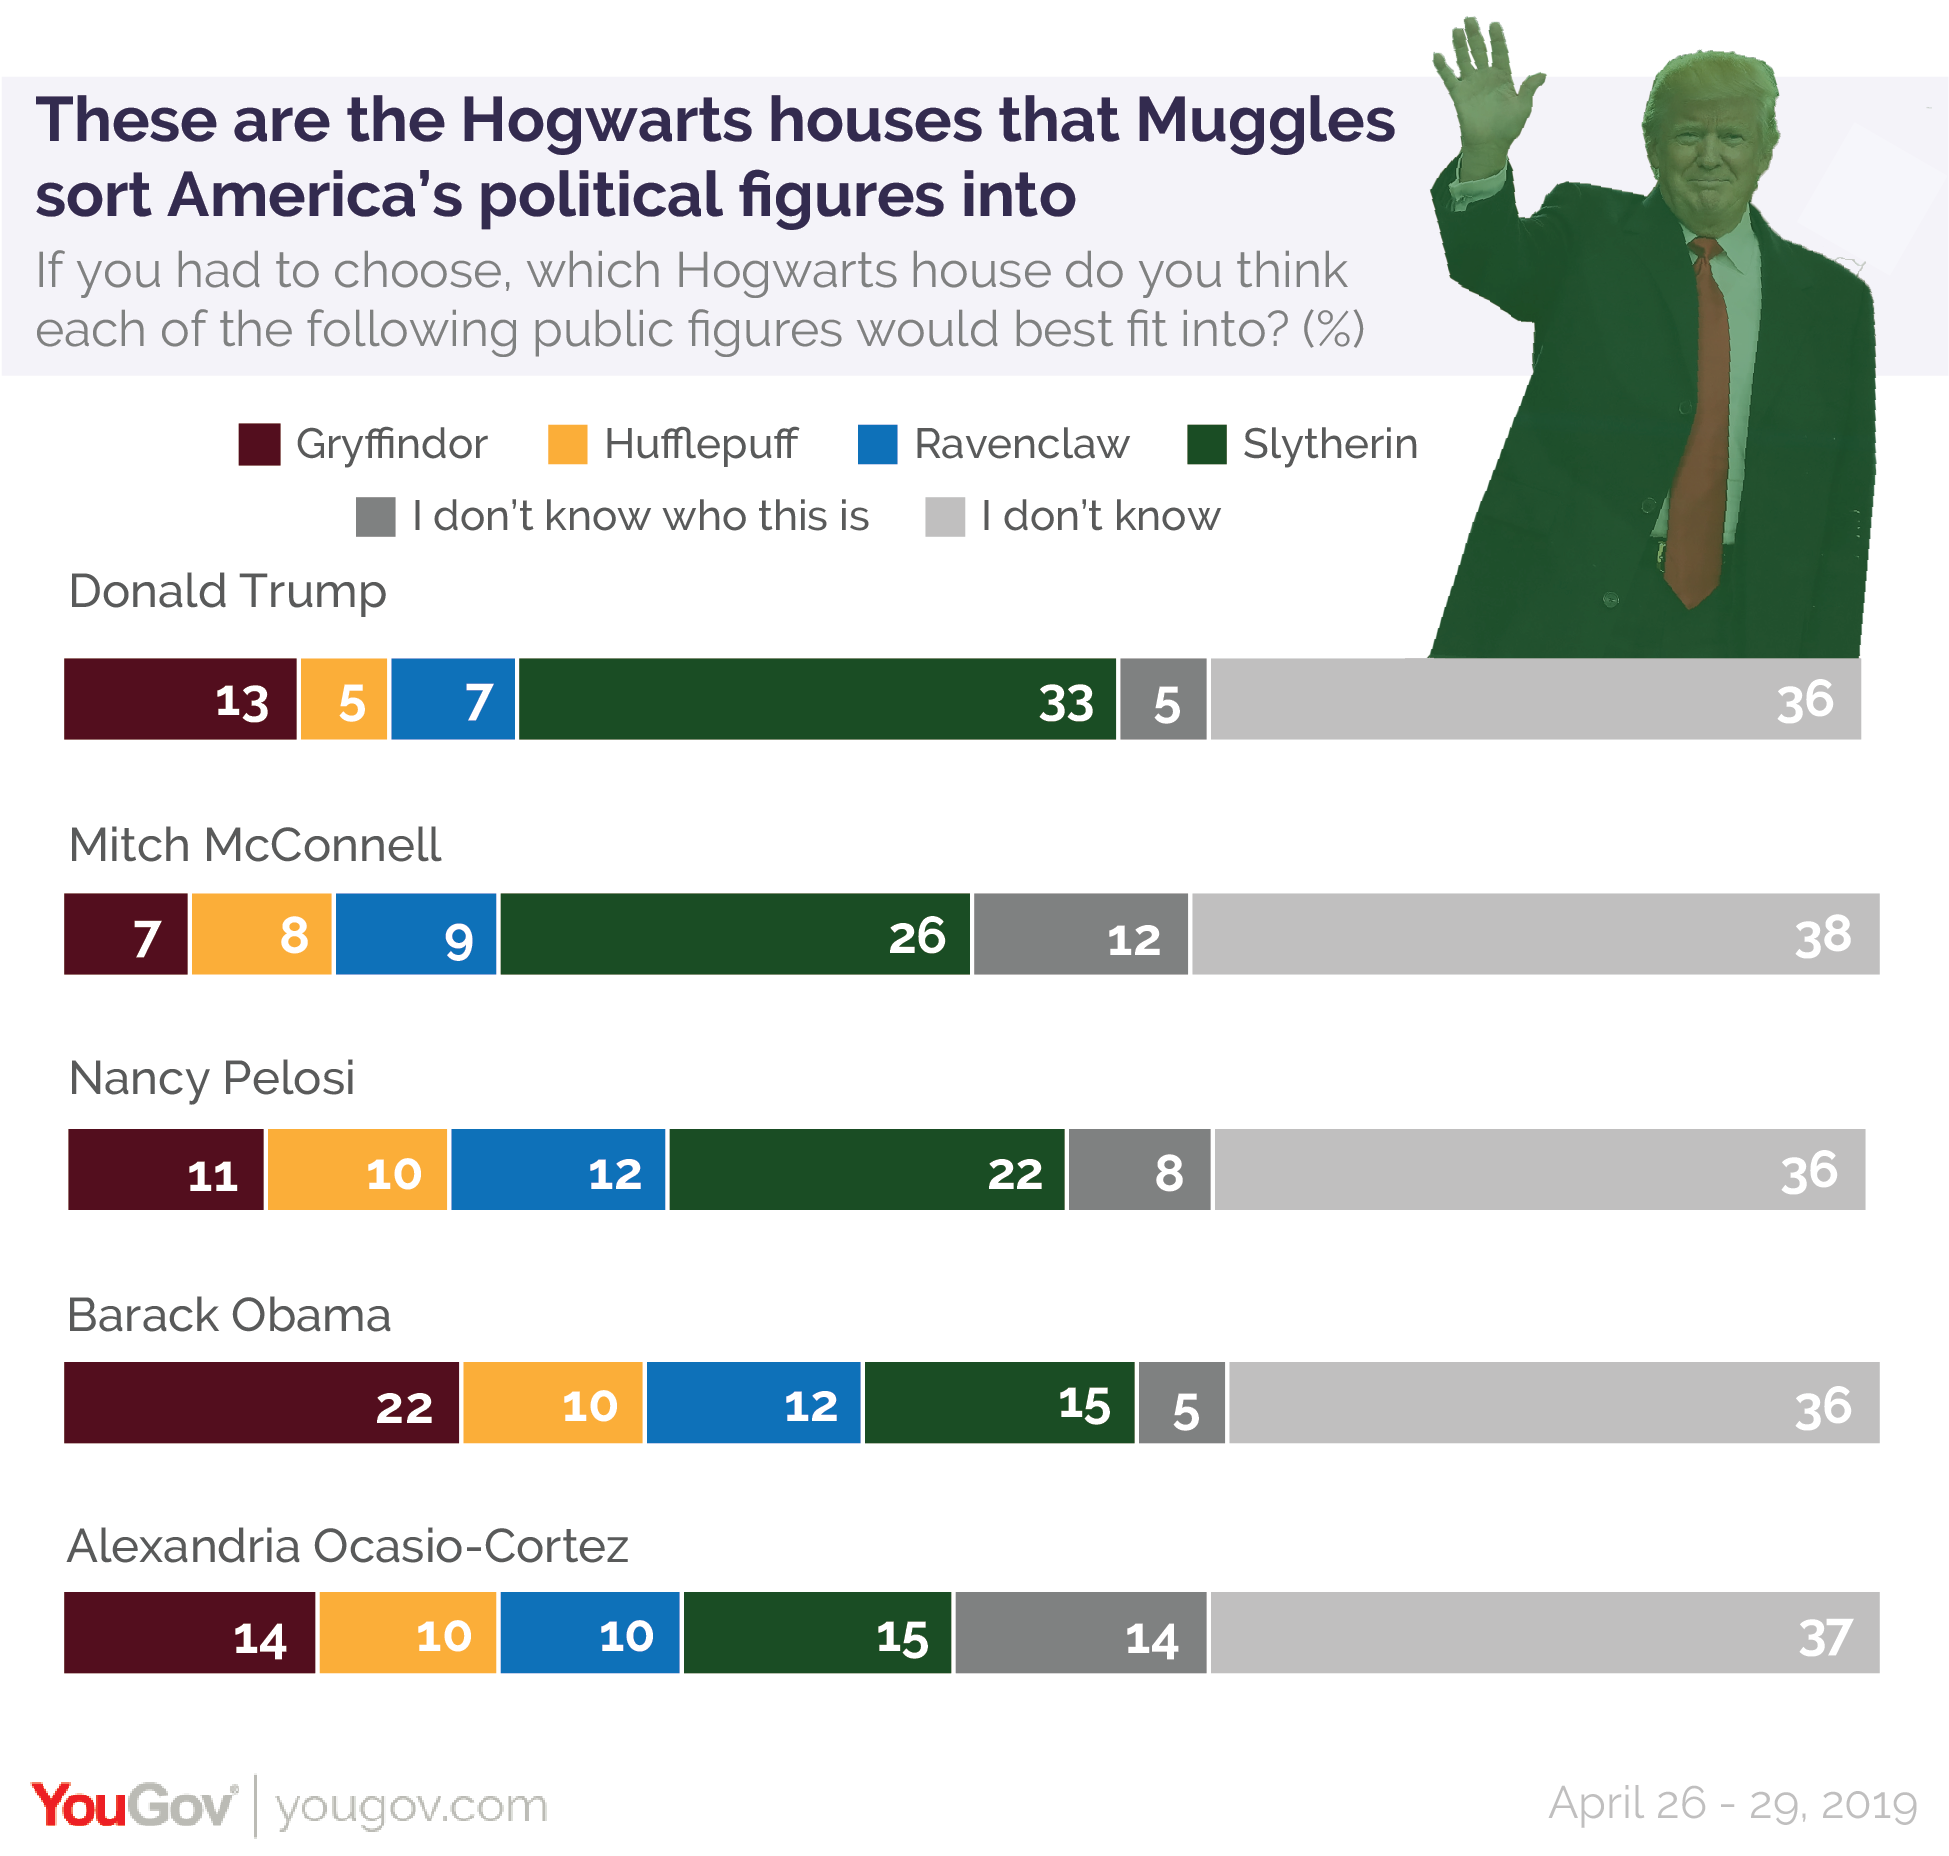 These are the Hogwarts houses that Muggles sort America's political figures into